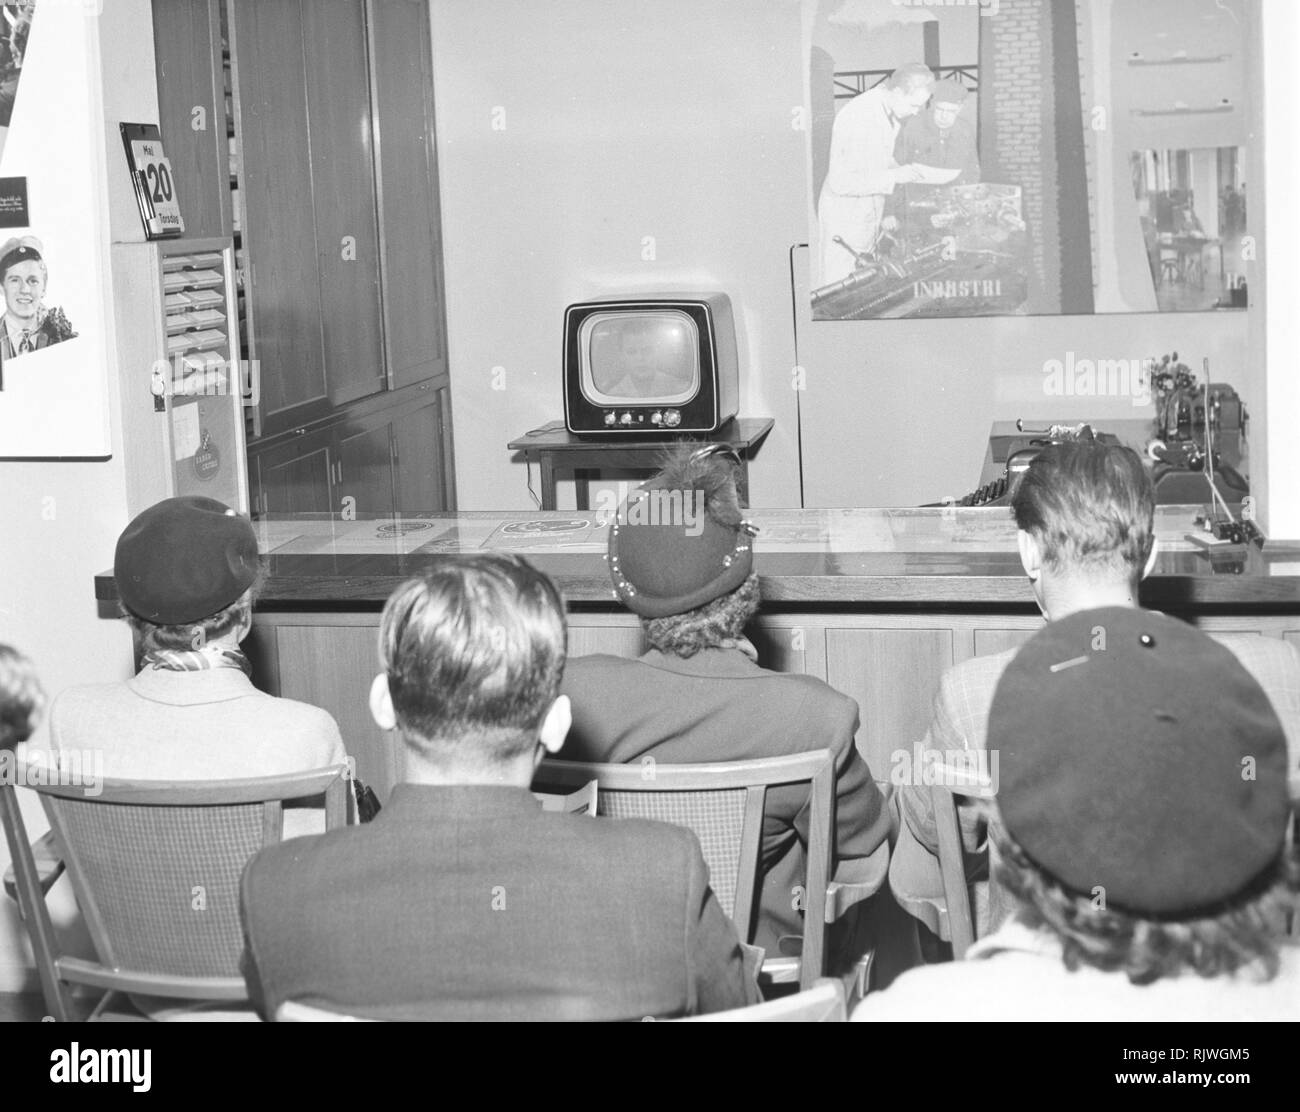 Television in the 1950s. People fascinated by the new television medium in May 1954. Sweden - Stock Image